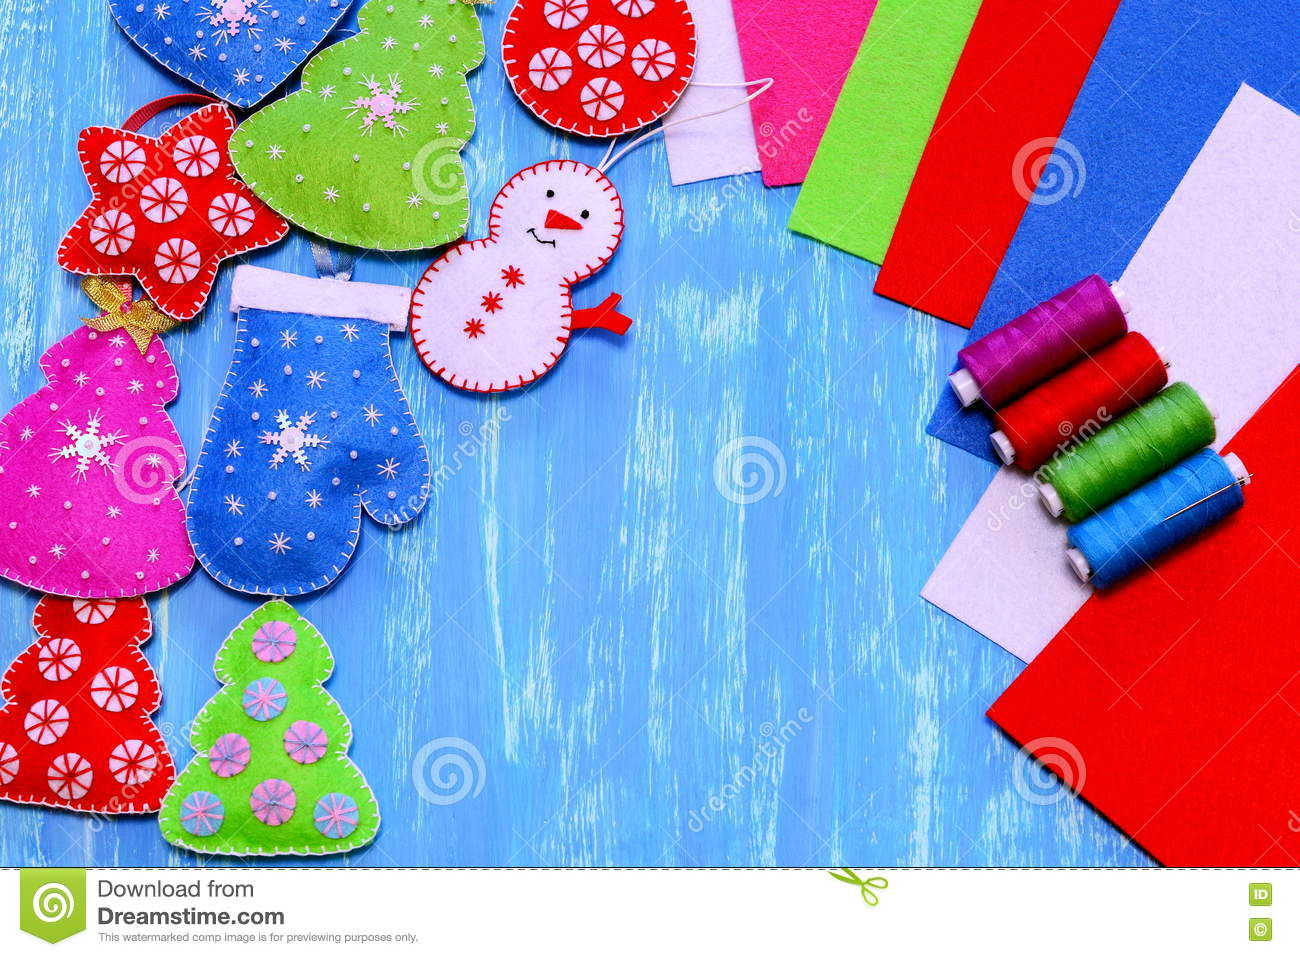 Felt Christmas Decorations Christmas Tree Heart Star Ball Mitten Snowman Diy Sewing Kit Colorful Felt Sheets Stock Photo Image Of Decorations Merry 79159758